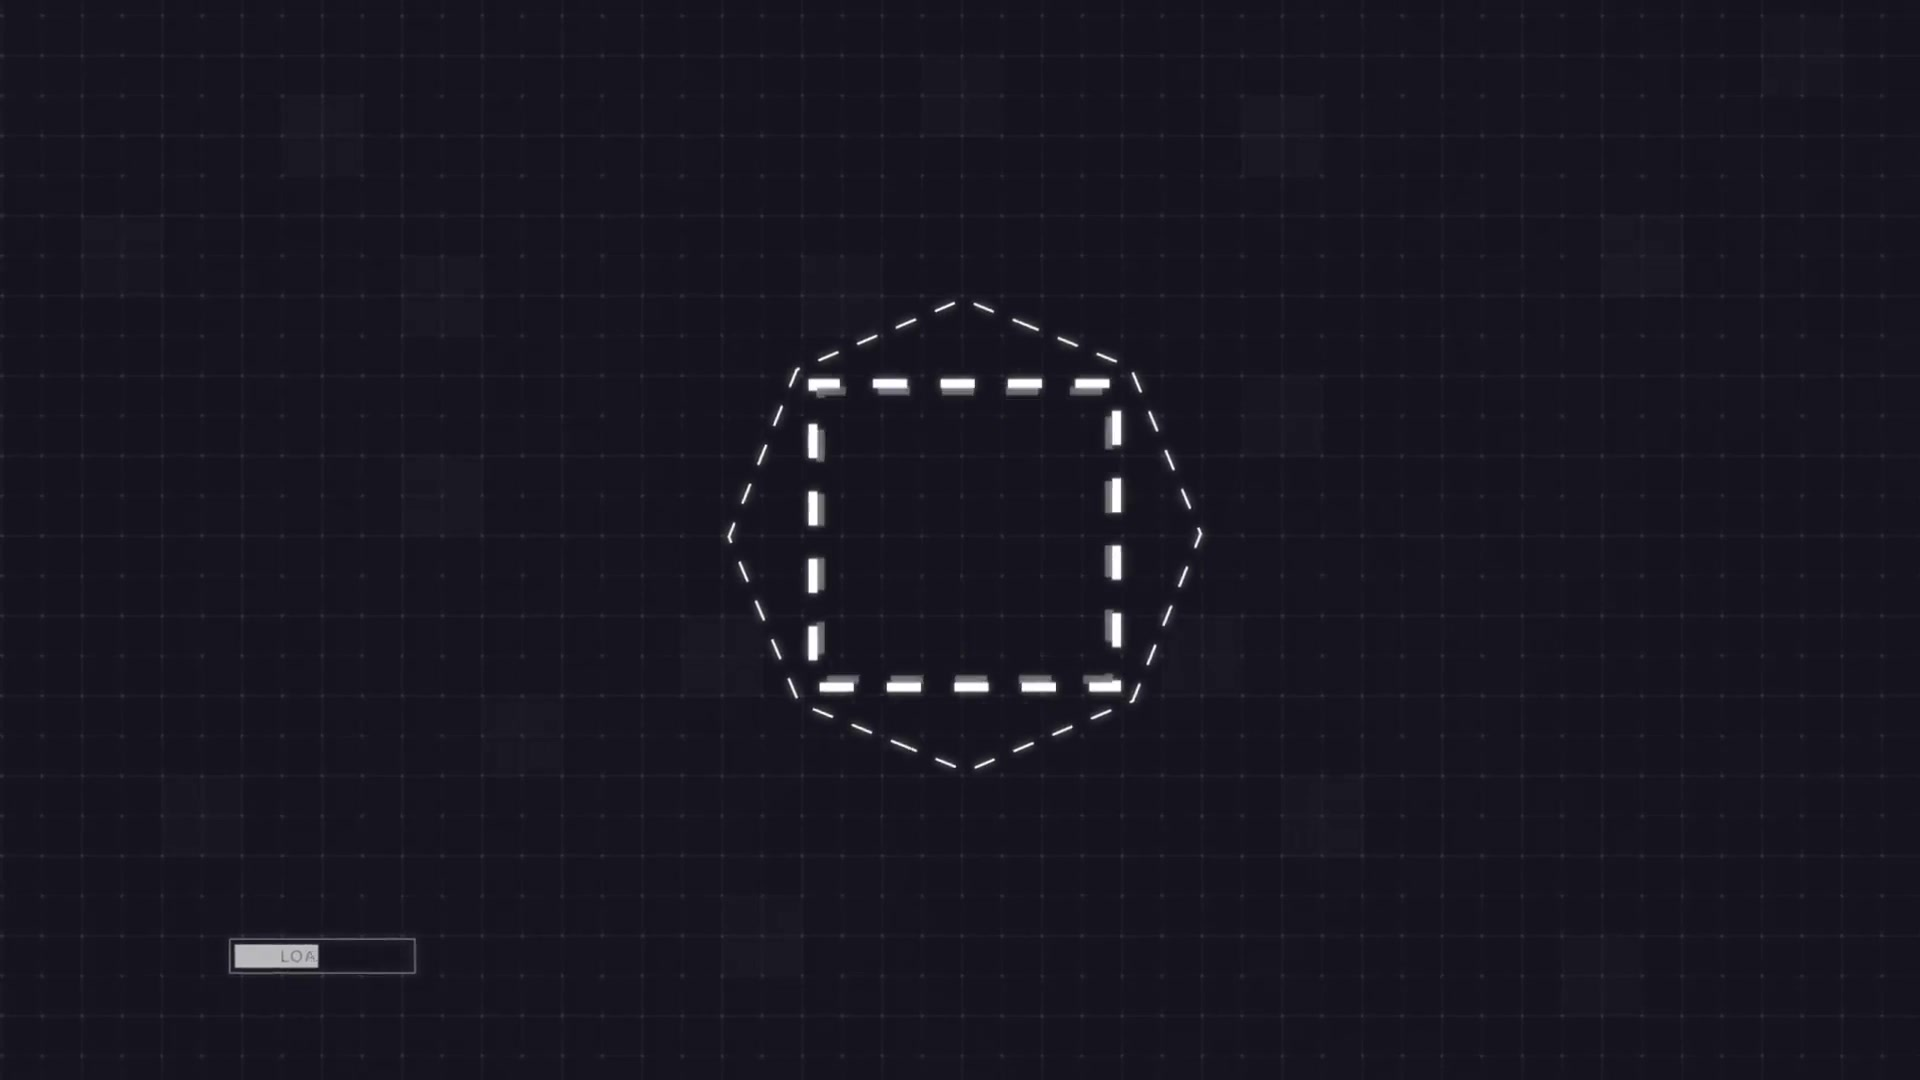 Minimal Logo Reveal - Download Videohive 22920167